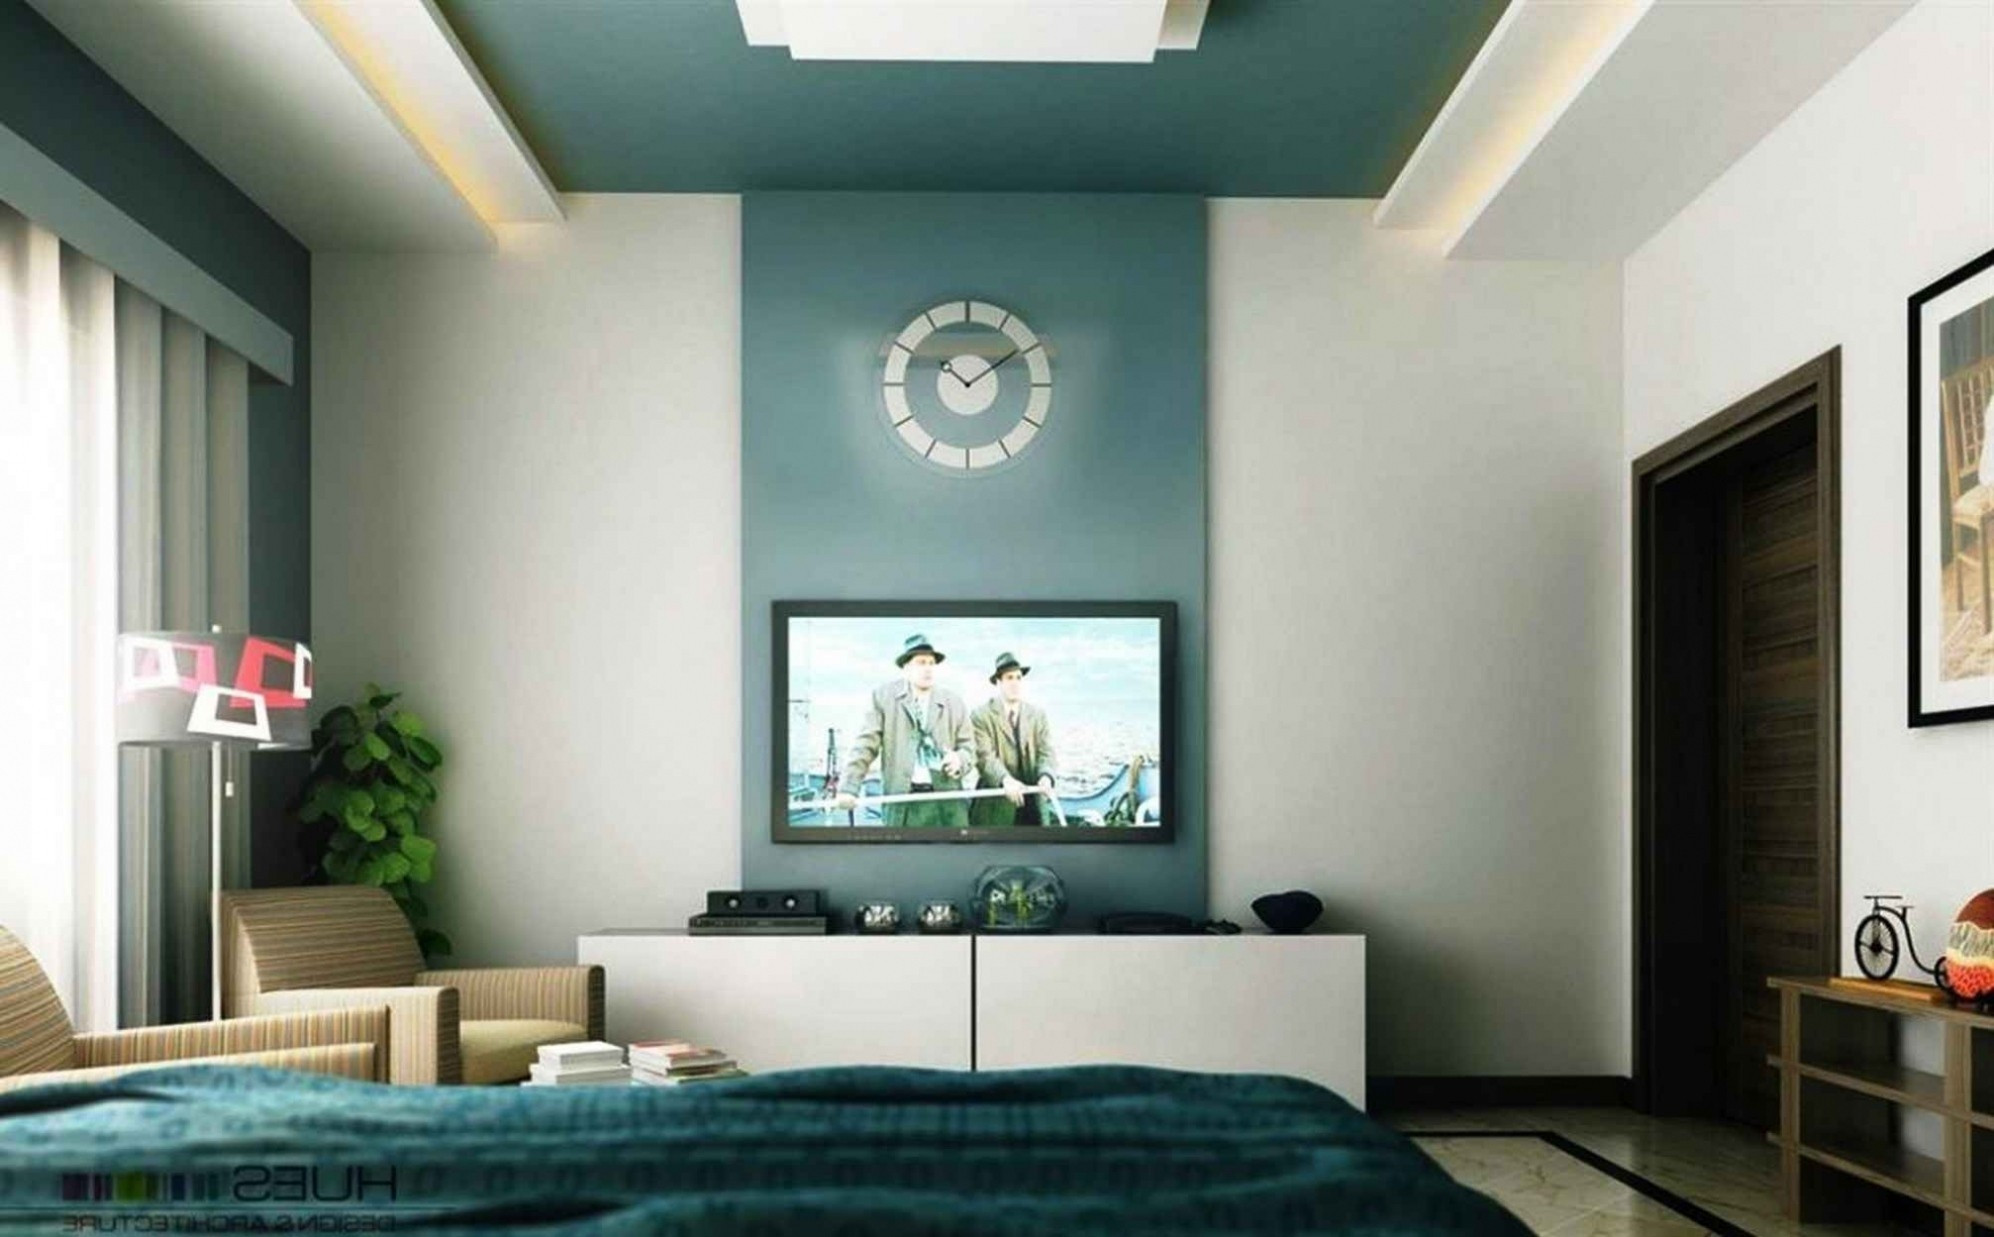 Best ideas about Painting Accent Walls . Save or Pin Bedroom Painting Ideas With Accent Wall Now.